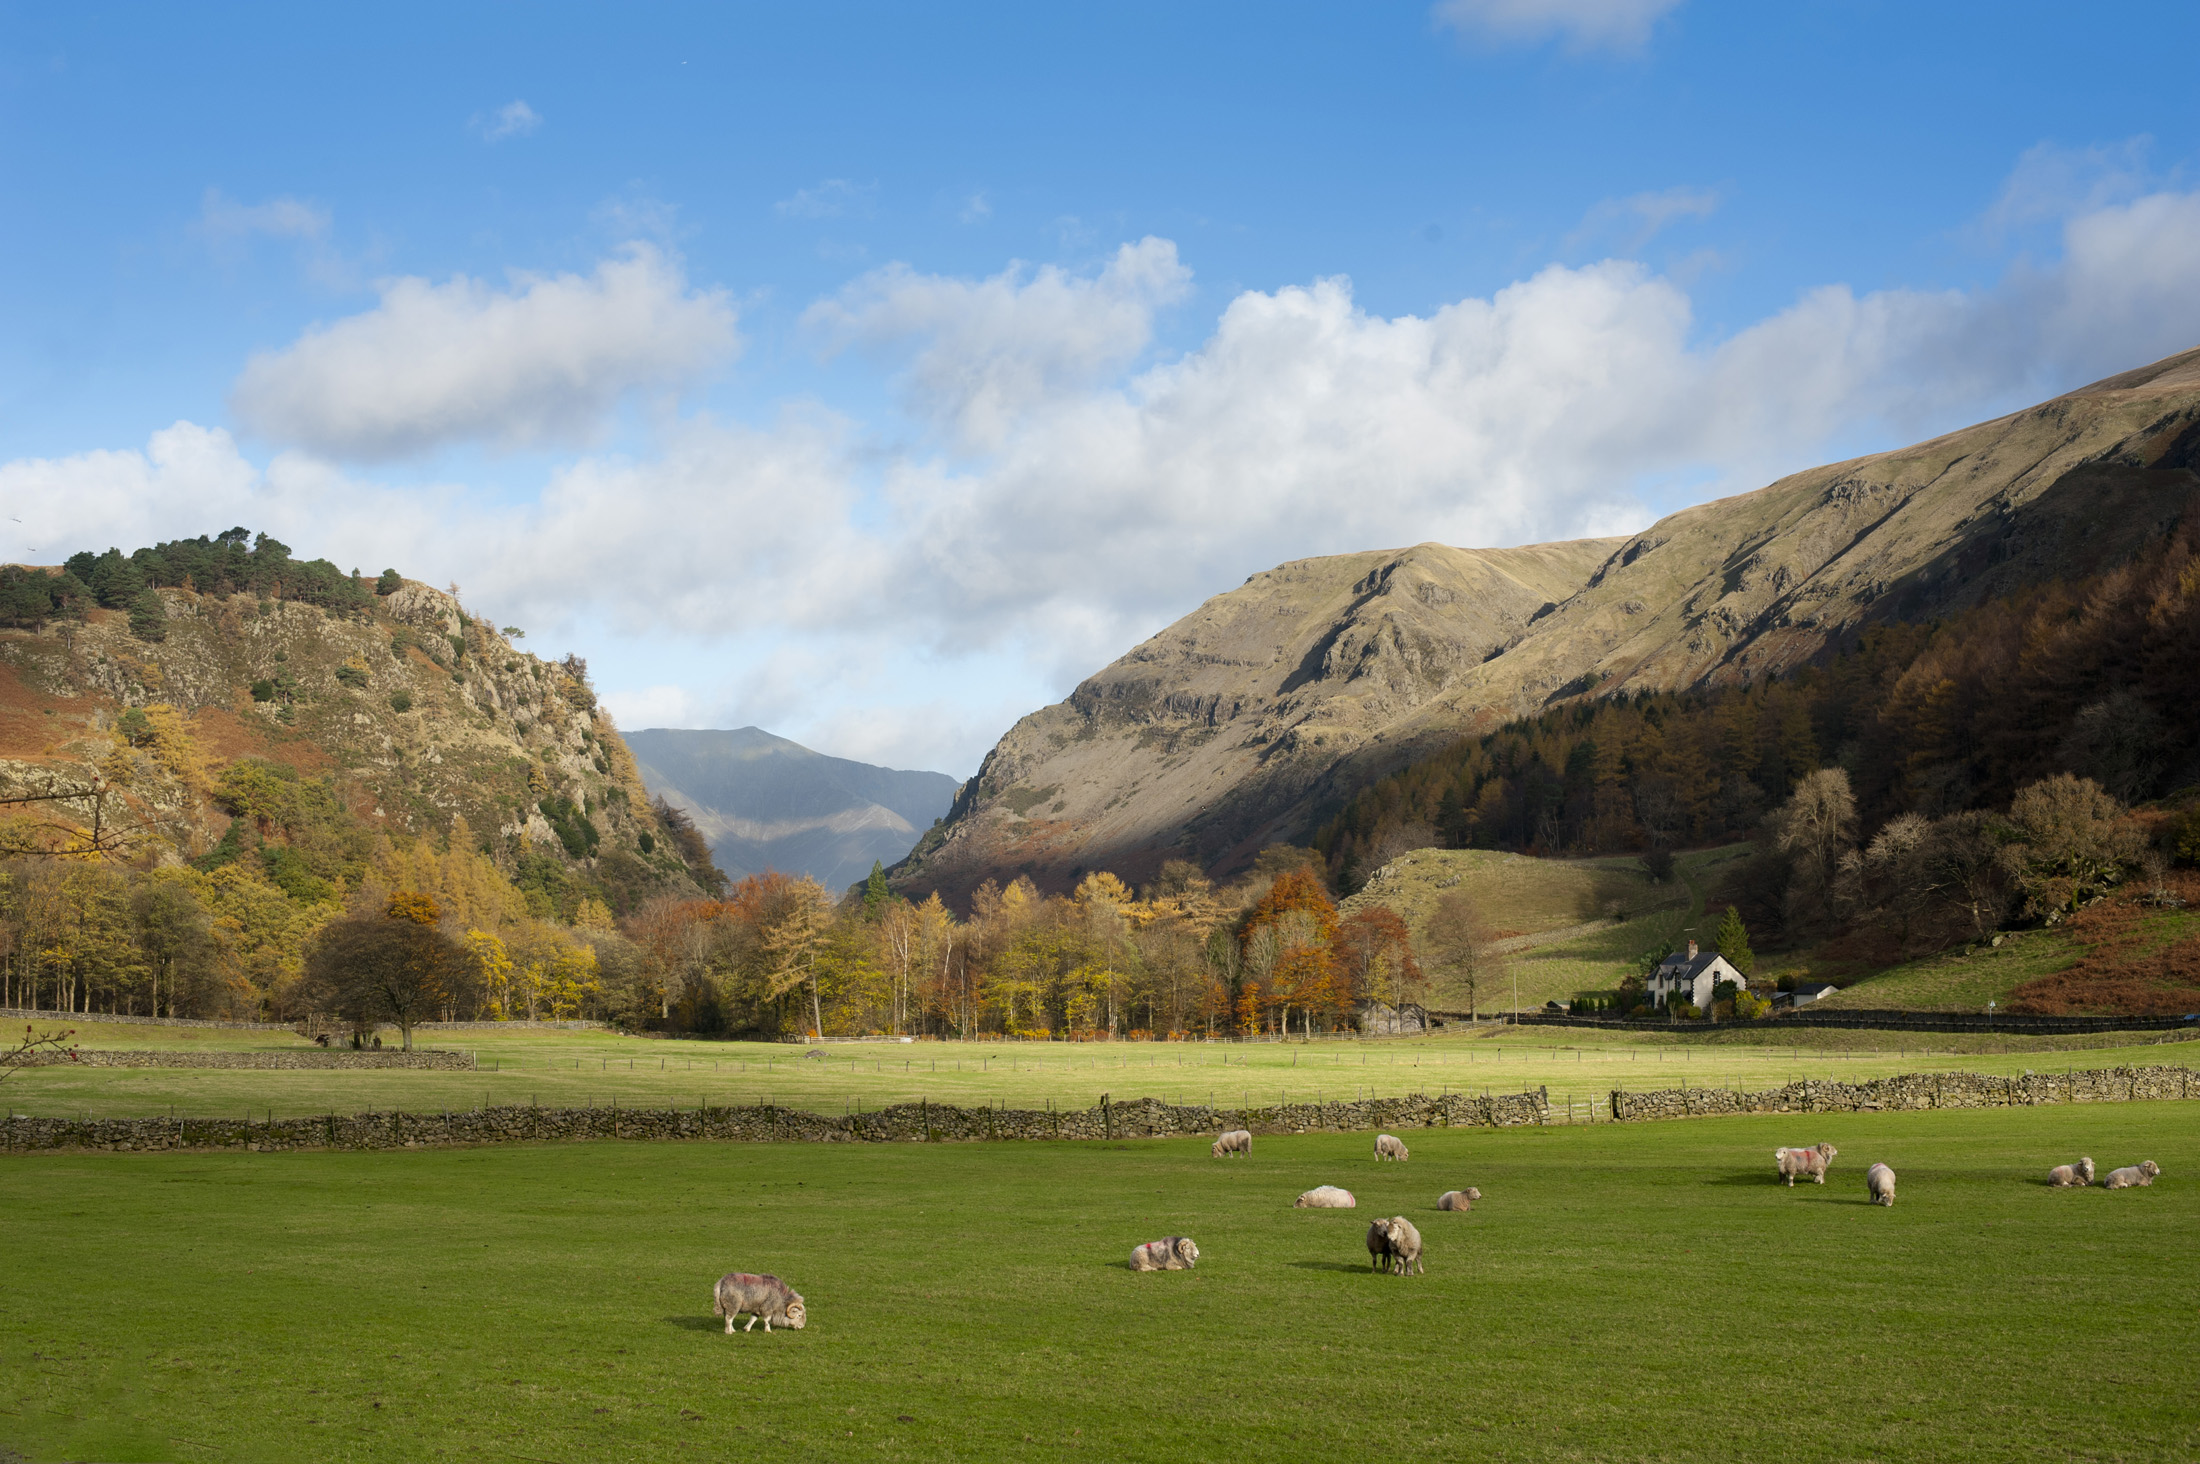 View from the scenic A591 at Legburthwaite of sheep grazing in lush green pastures at the foot of Castle Rock in Cumbria